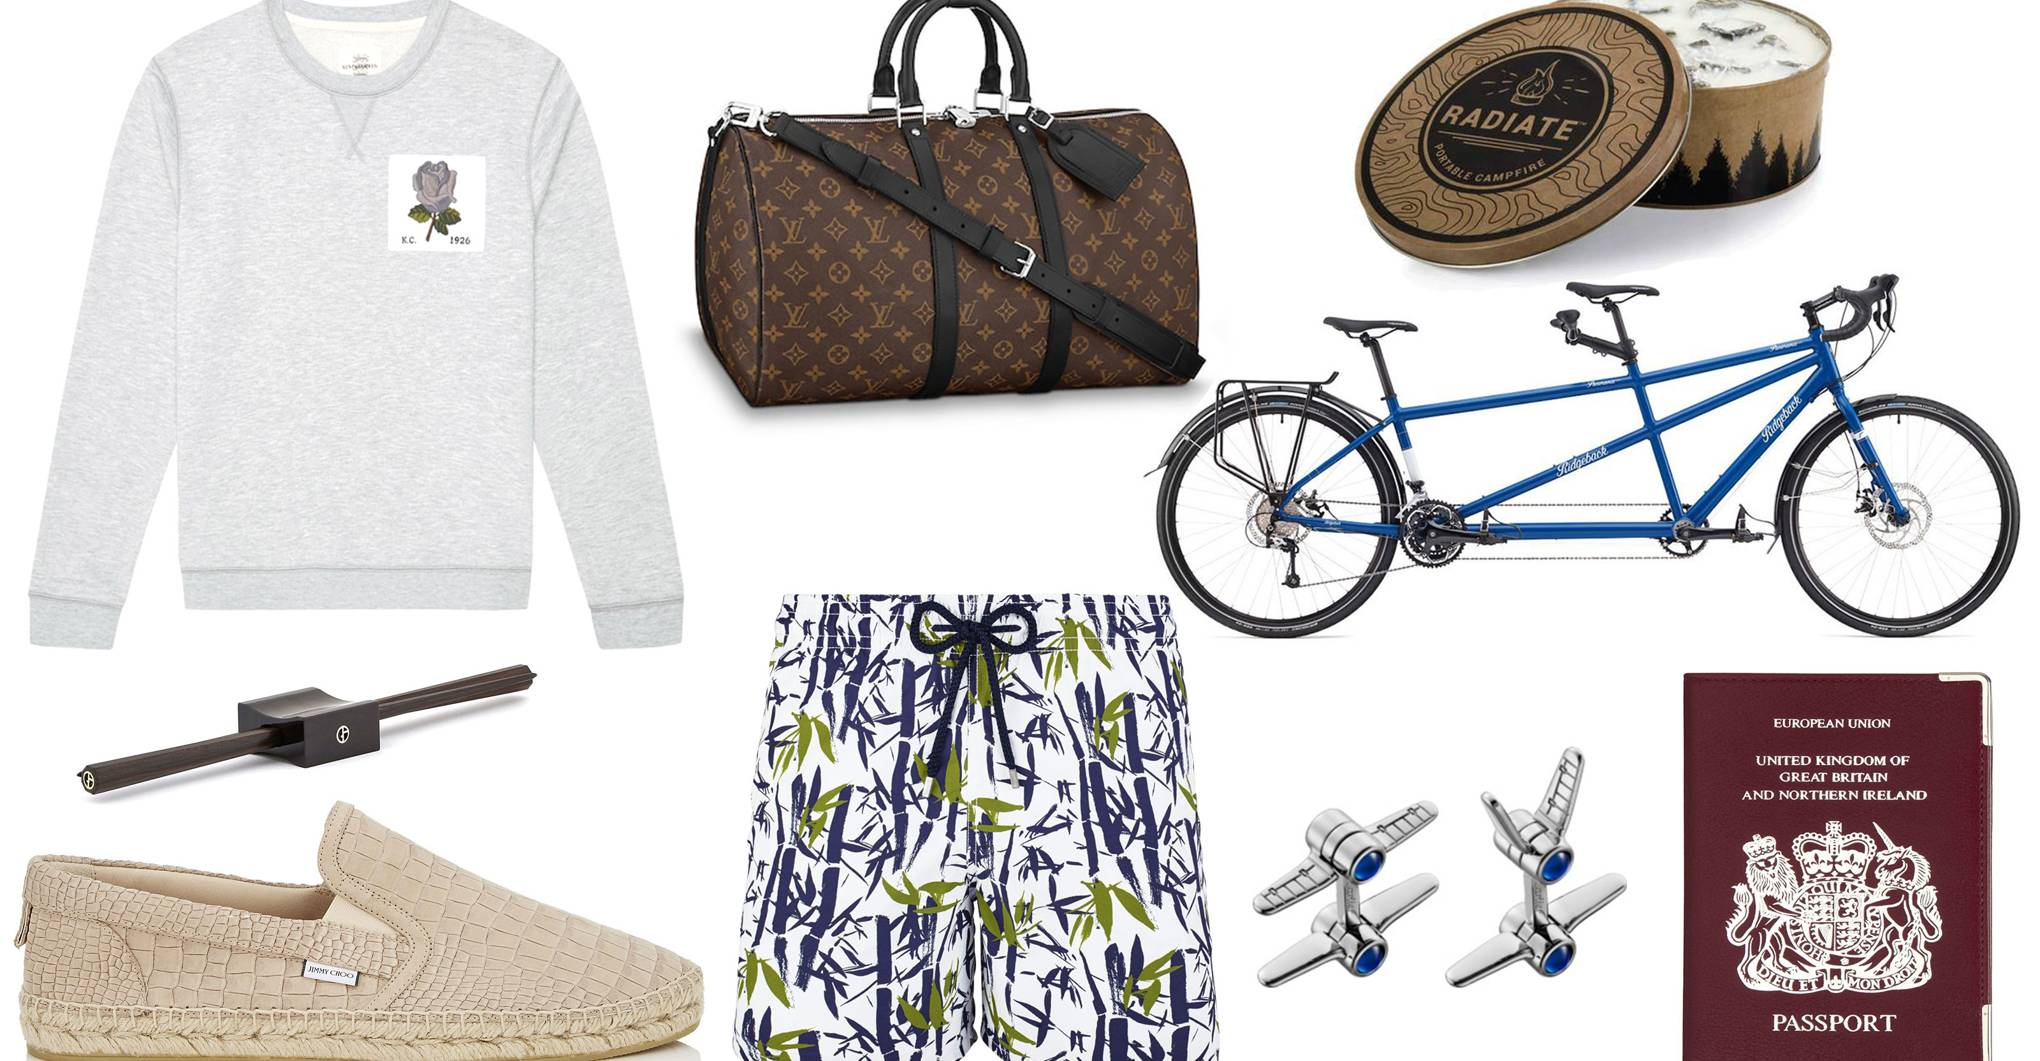 Valentine's Day travel gifts for him